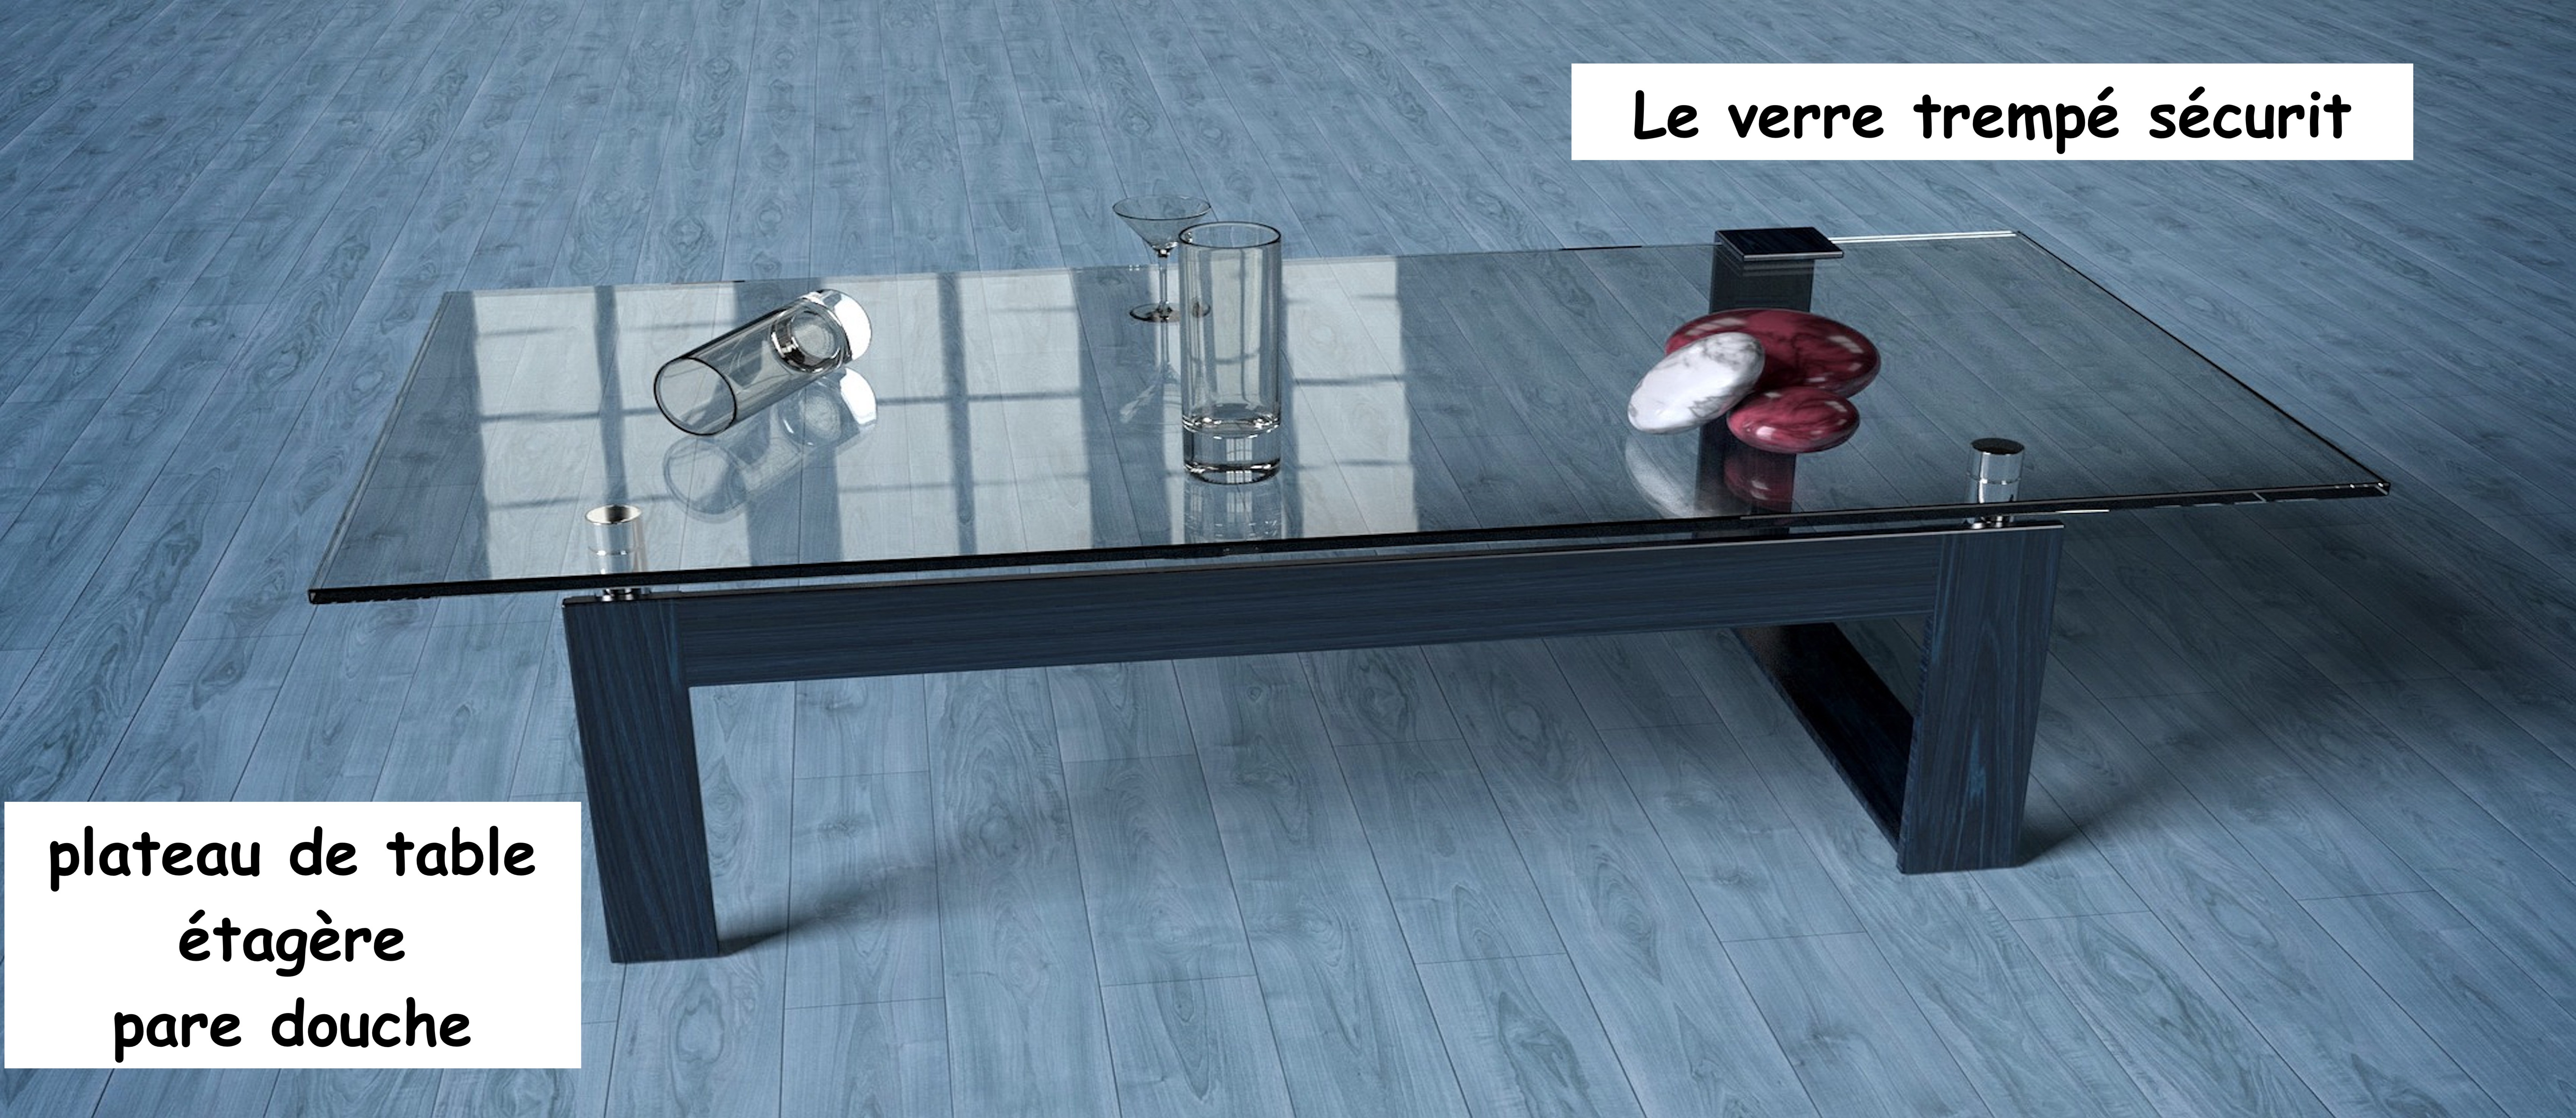 TABLE TREMPE